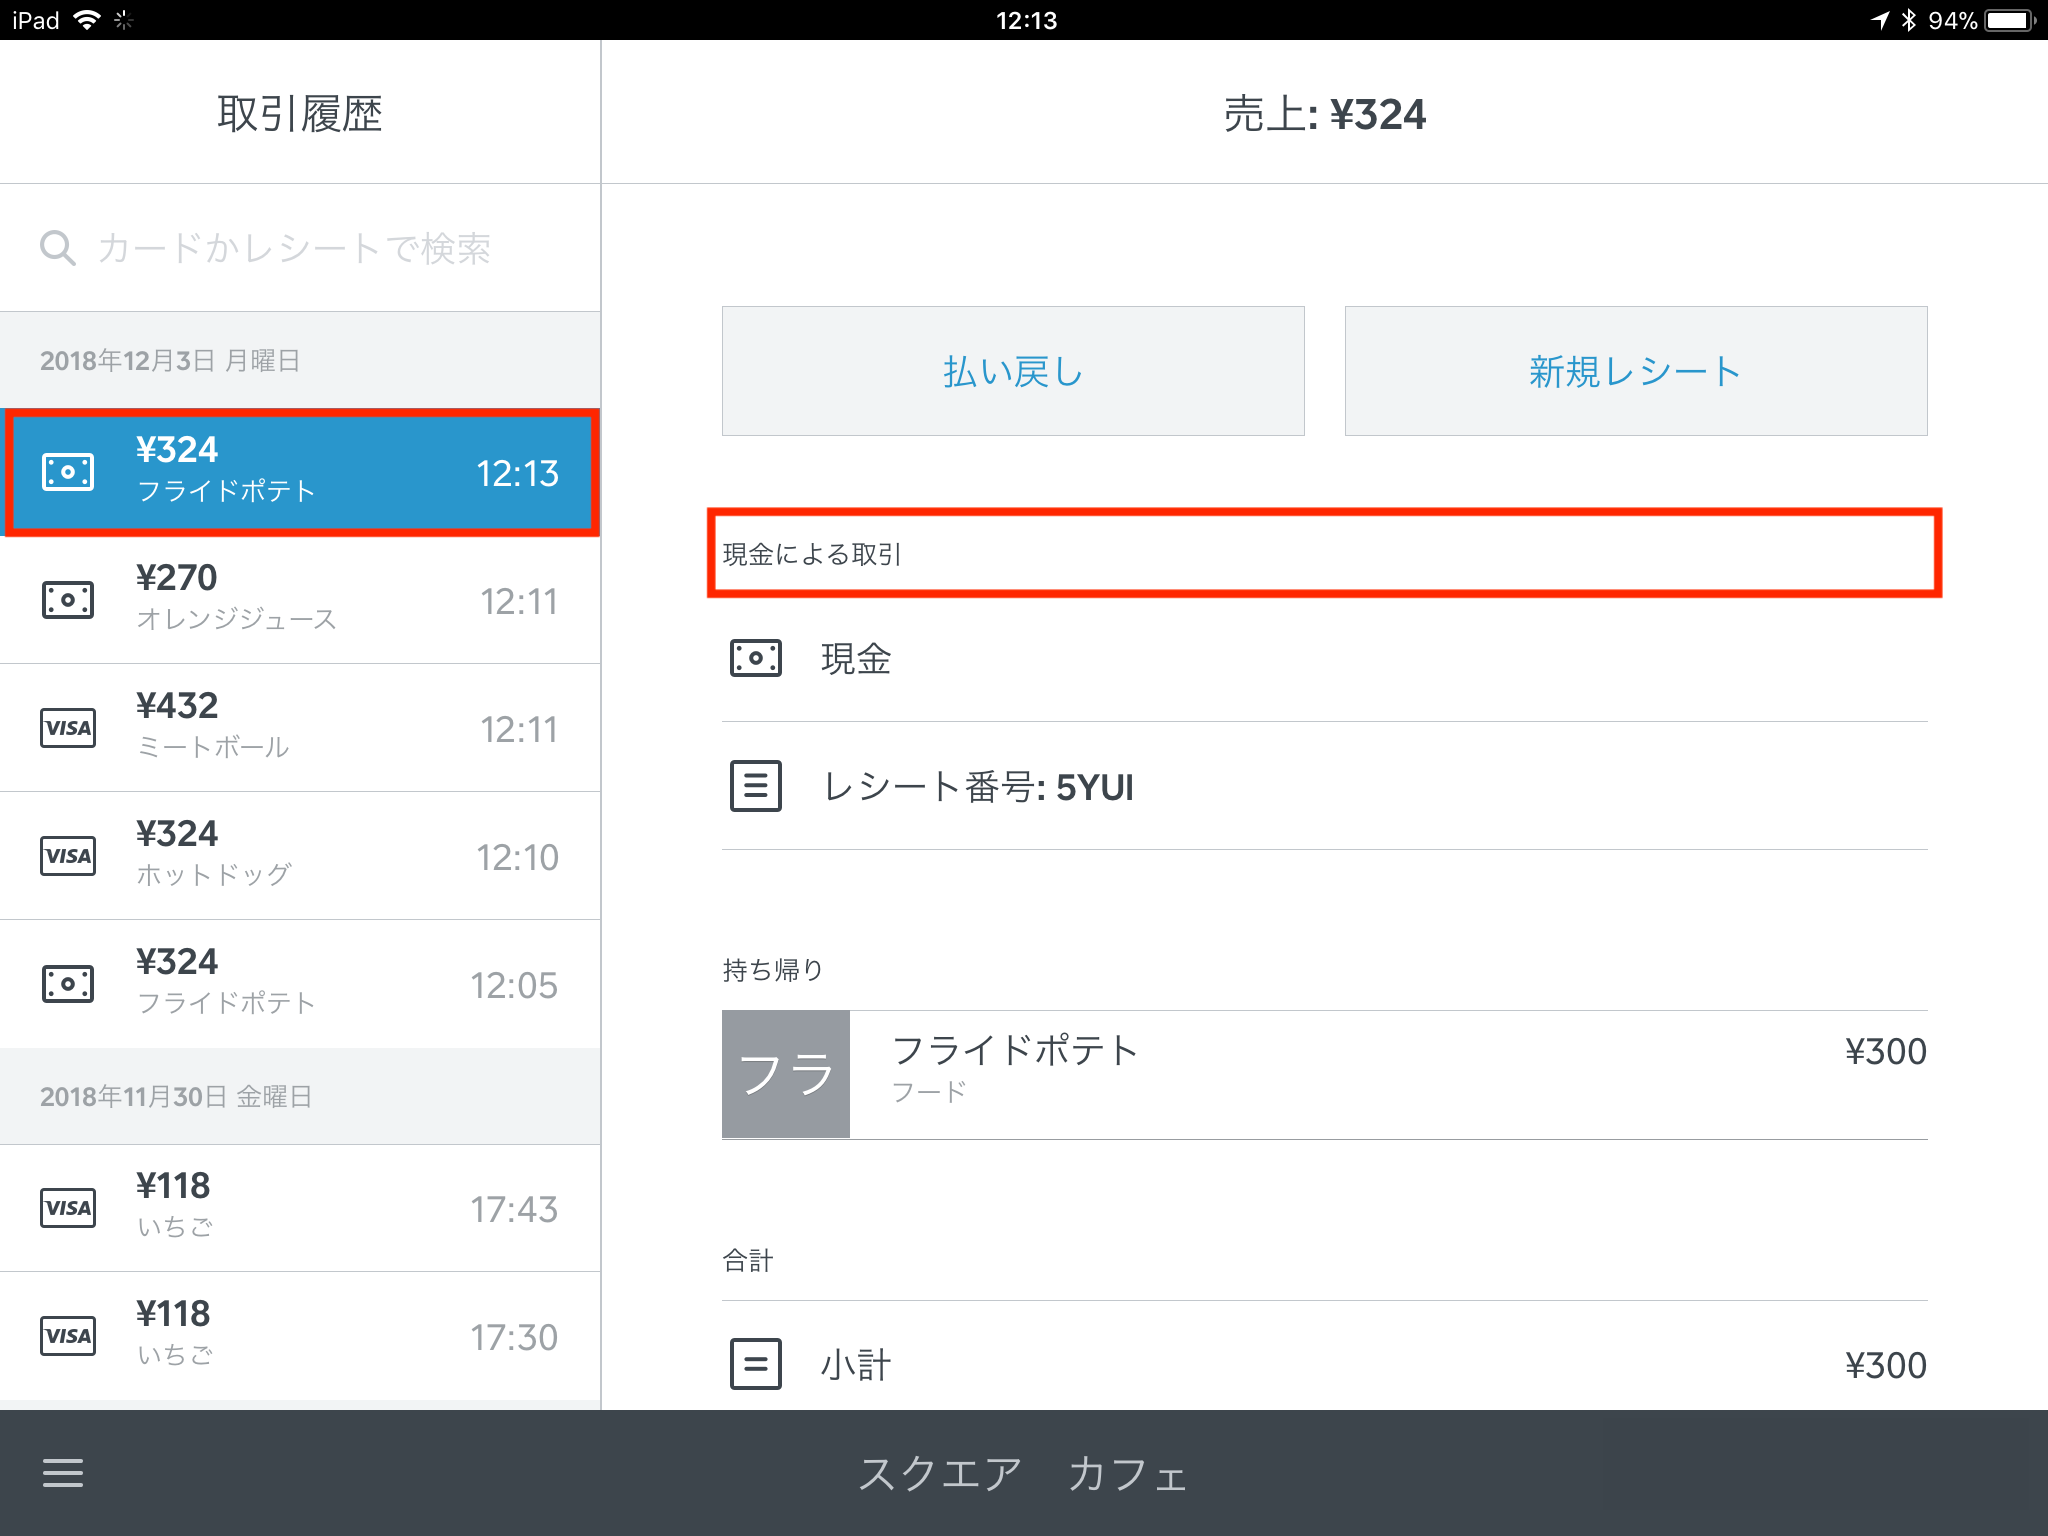 JP iOS How to Check Cash Sales in Transactions